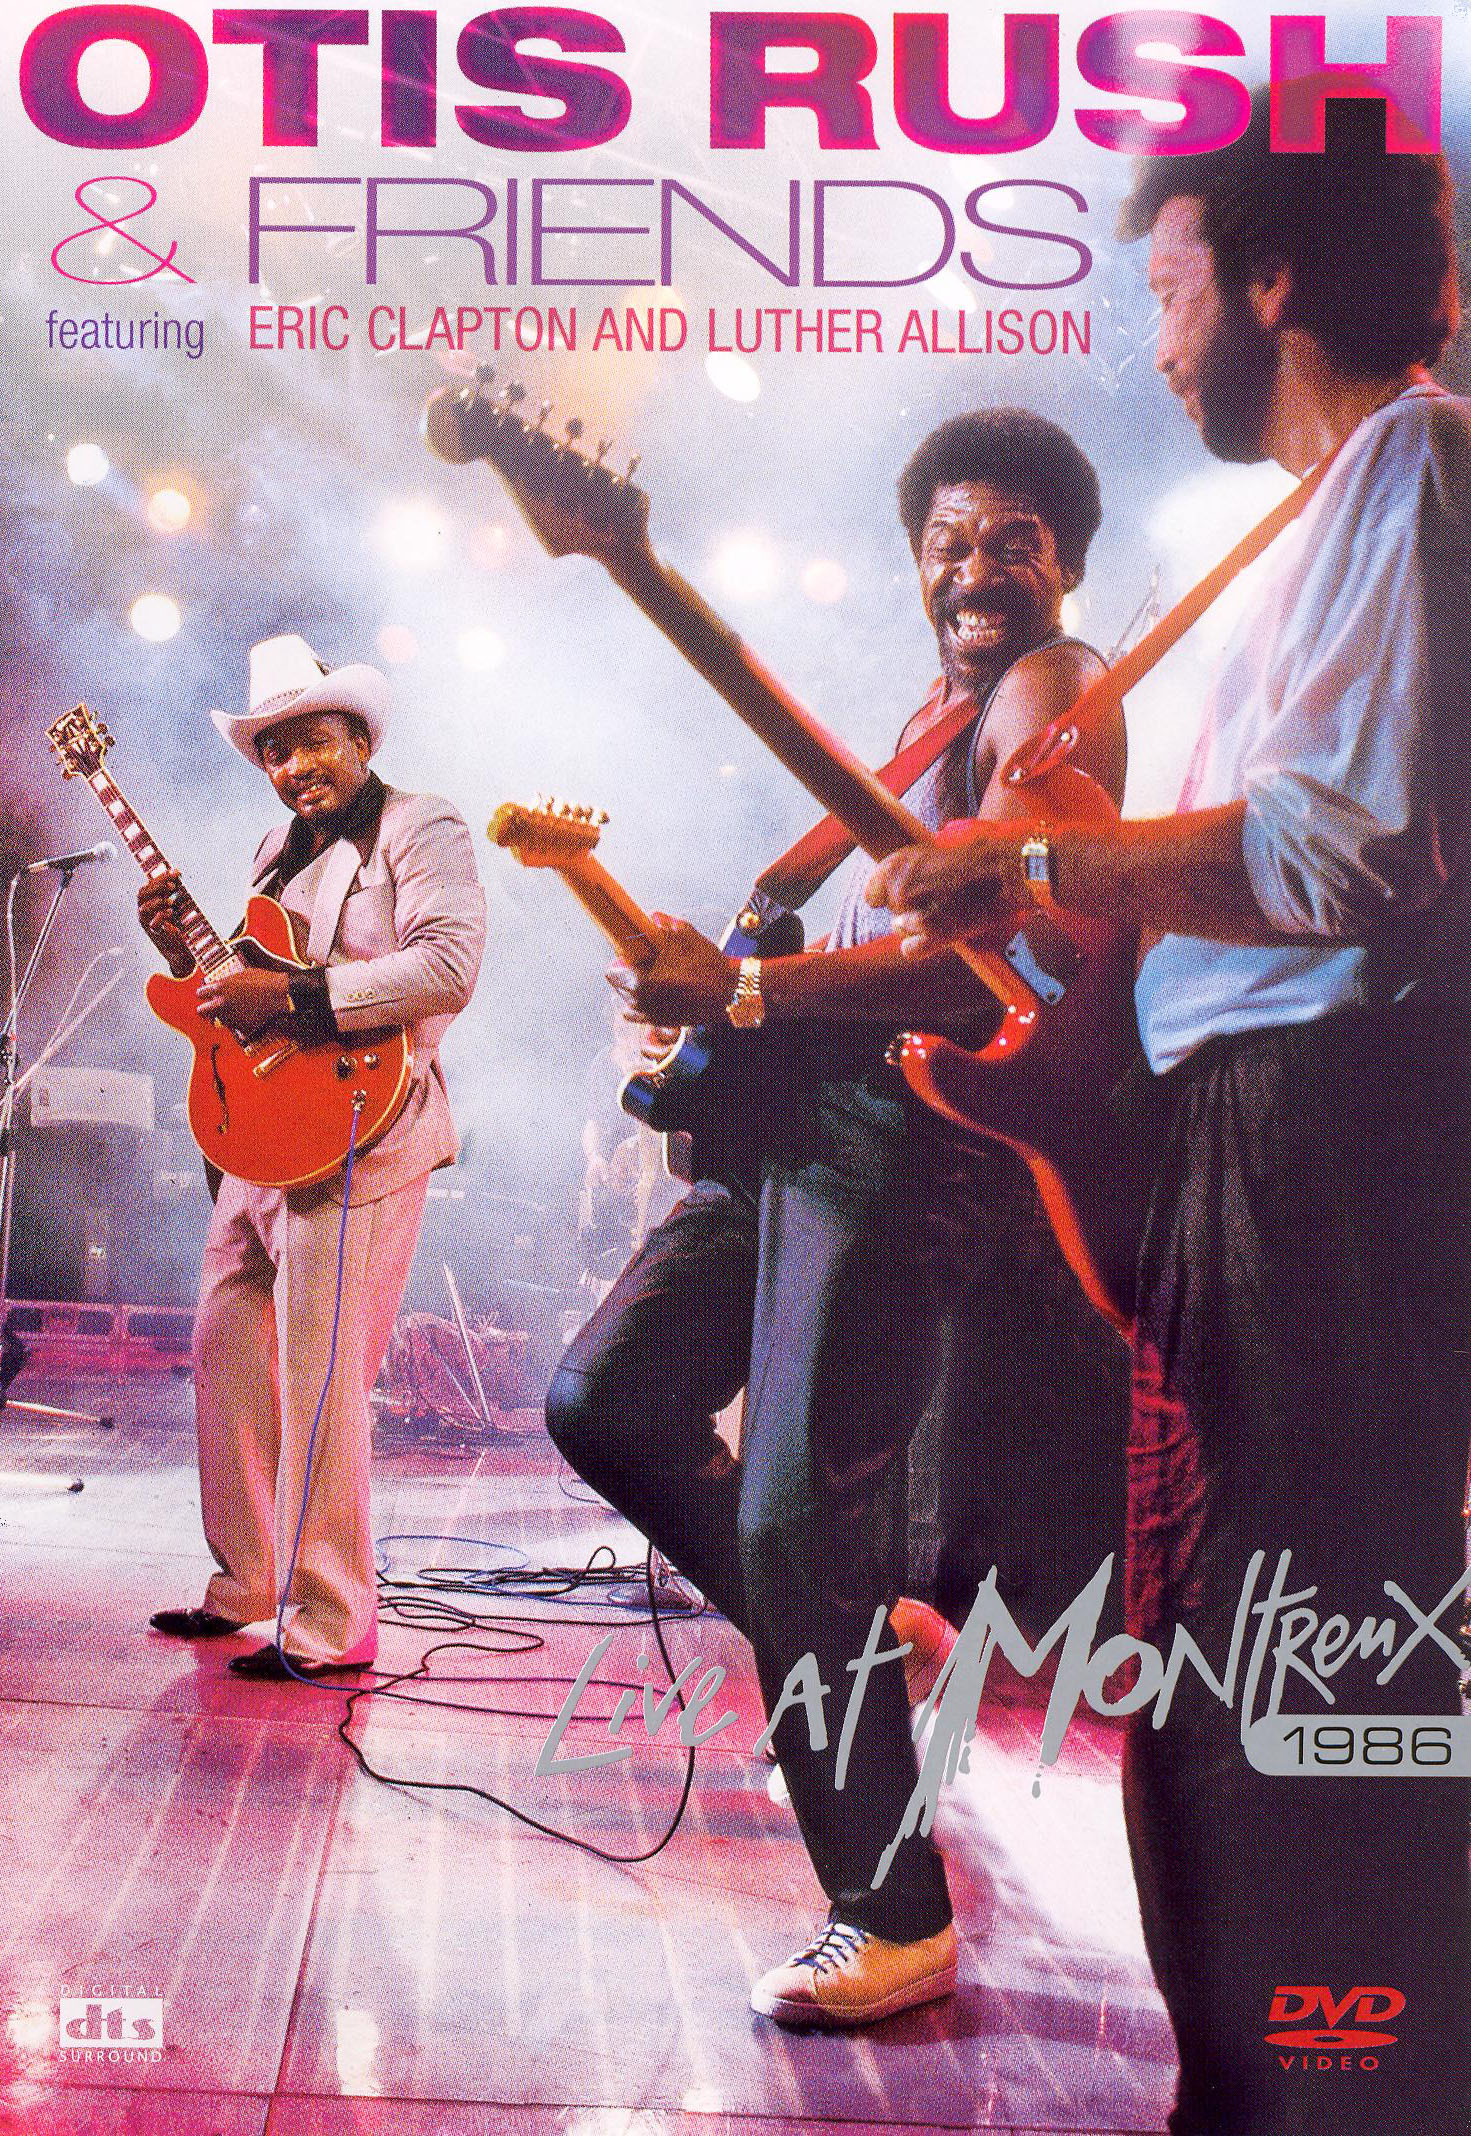 Otis Rush and Friends: Live at Montreux 1986